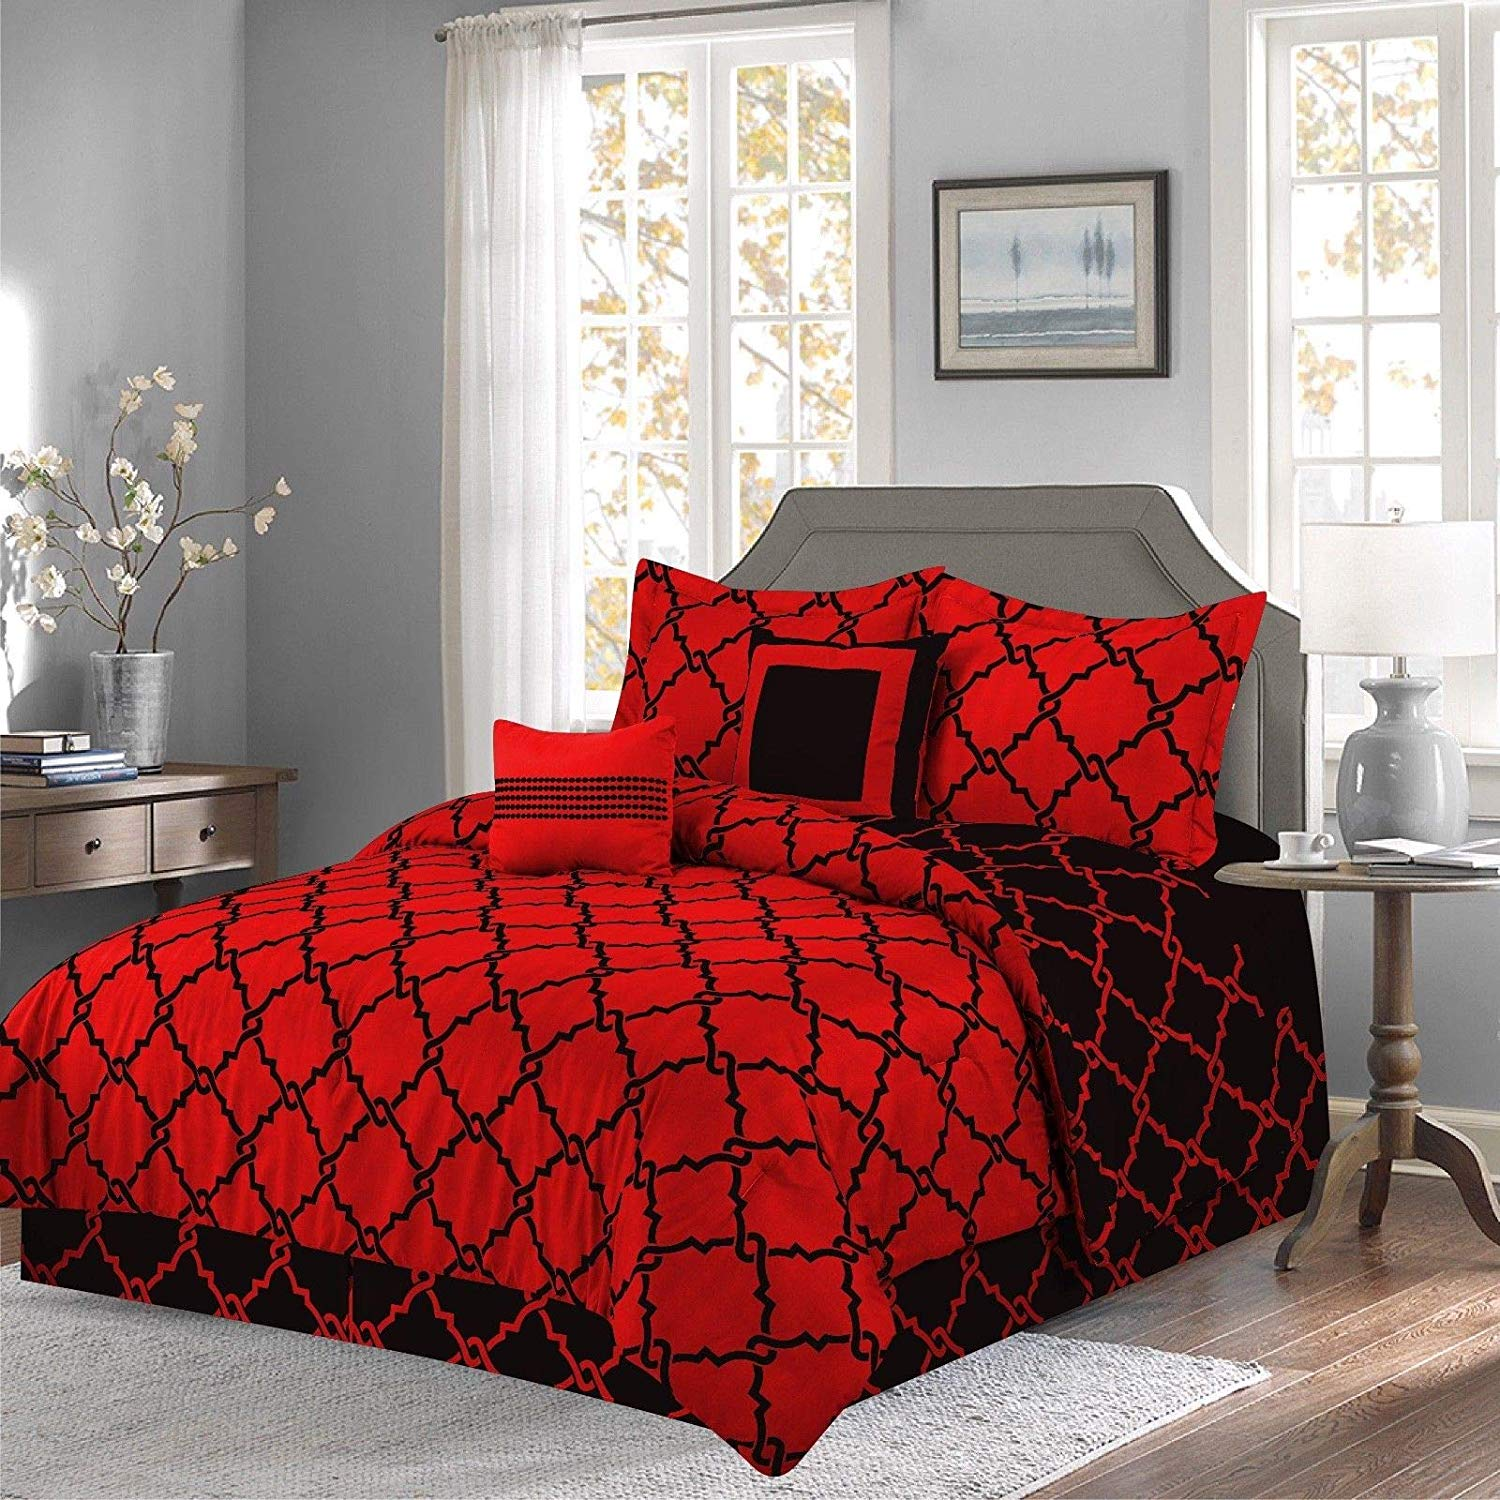 annissa collection luxurious 10 piece red geometric california king size soft comforter set bed sheets limited time sale walmart com